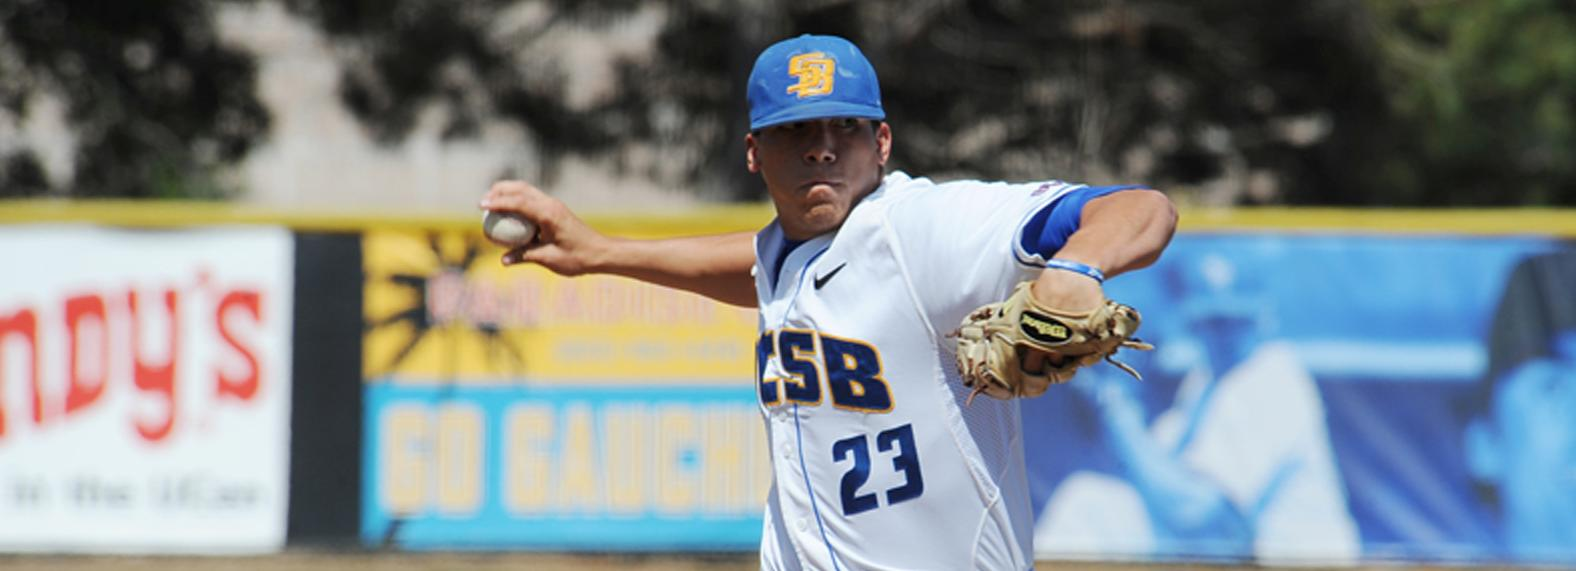 Loredo's Complete Game 5-Hitter Paces Gauchos to 5-0 Win Over LMU